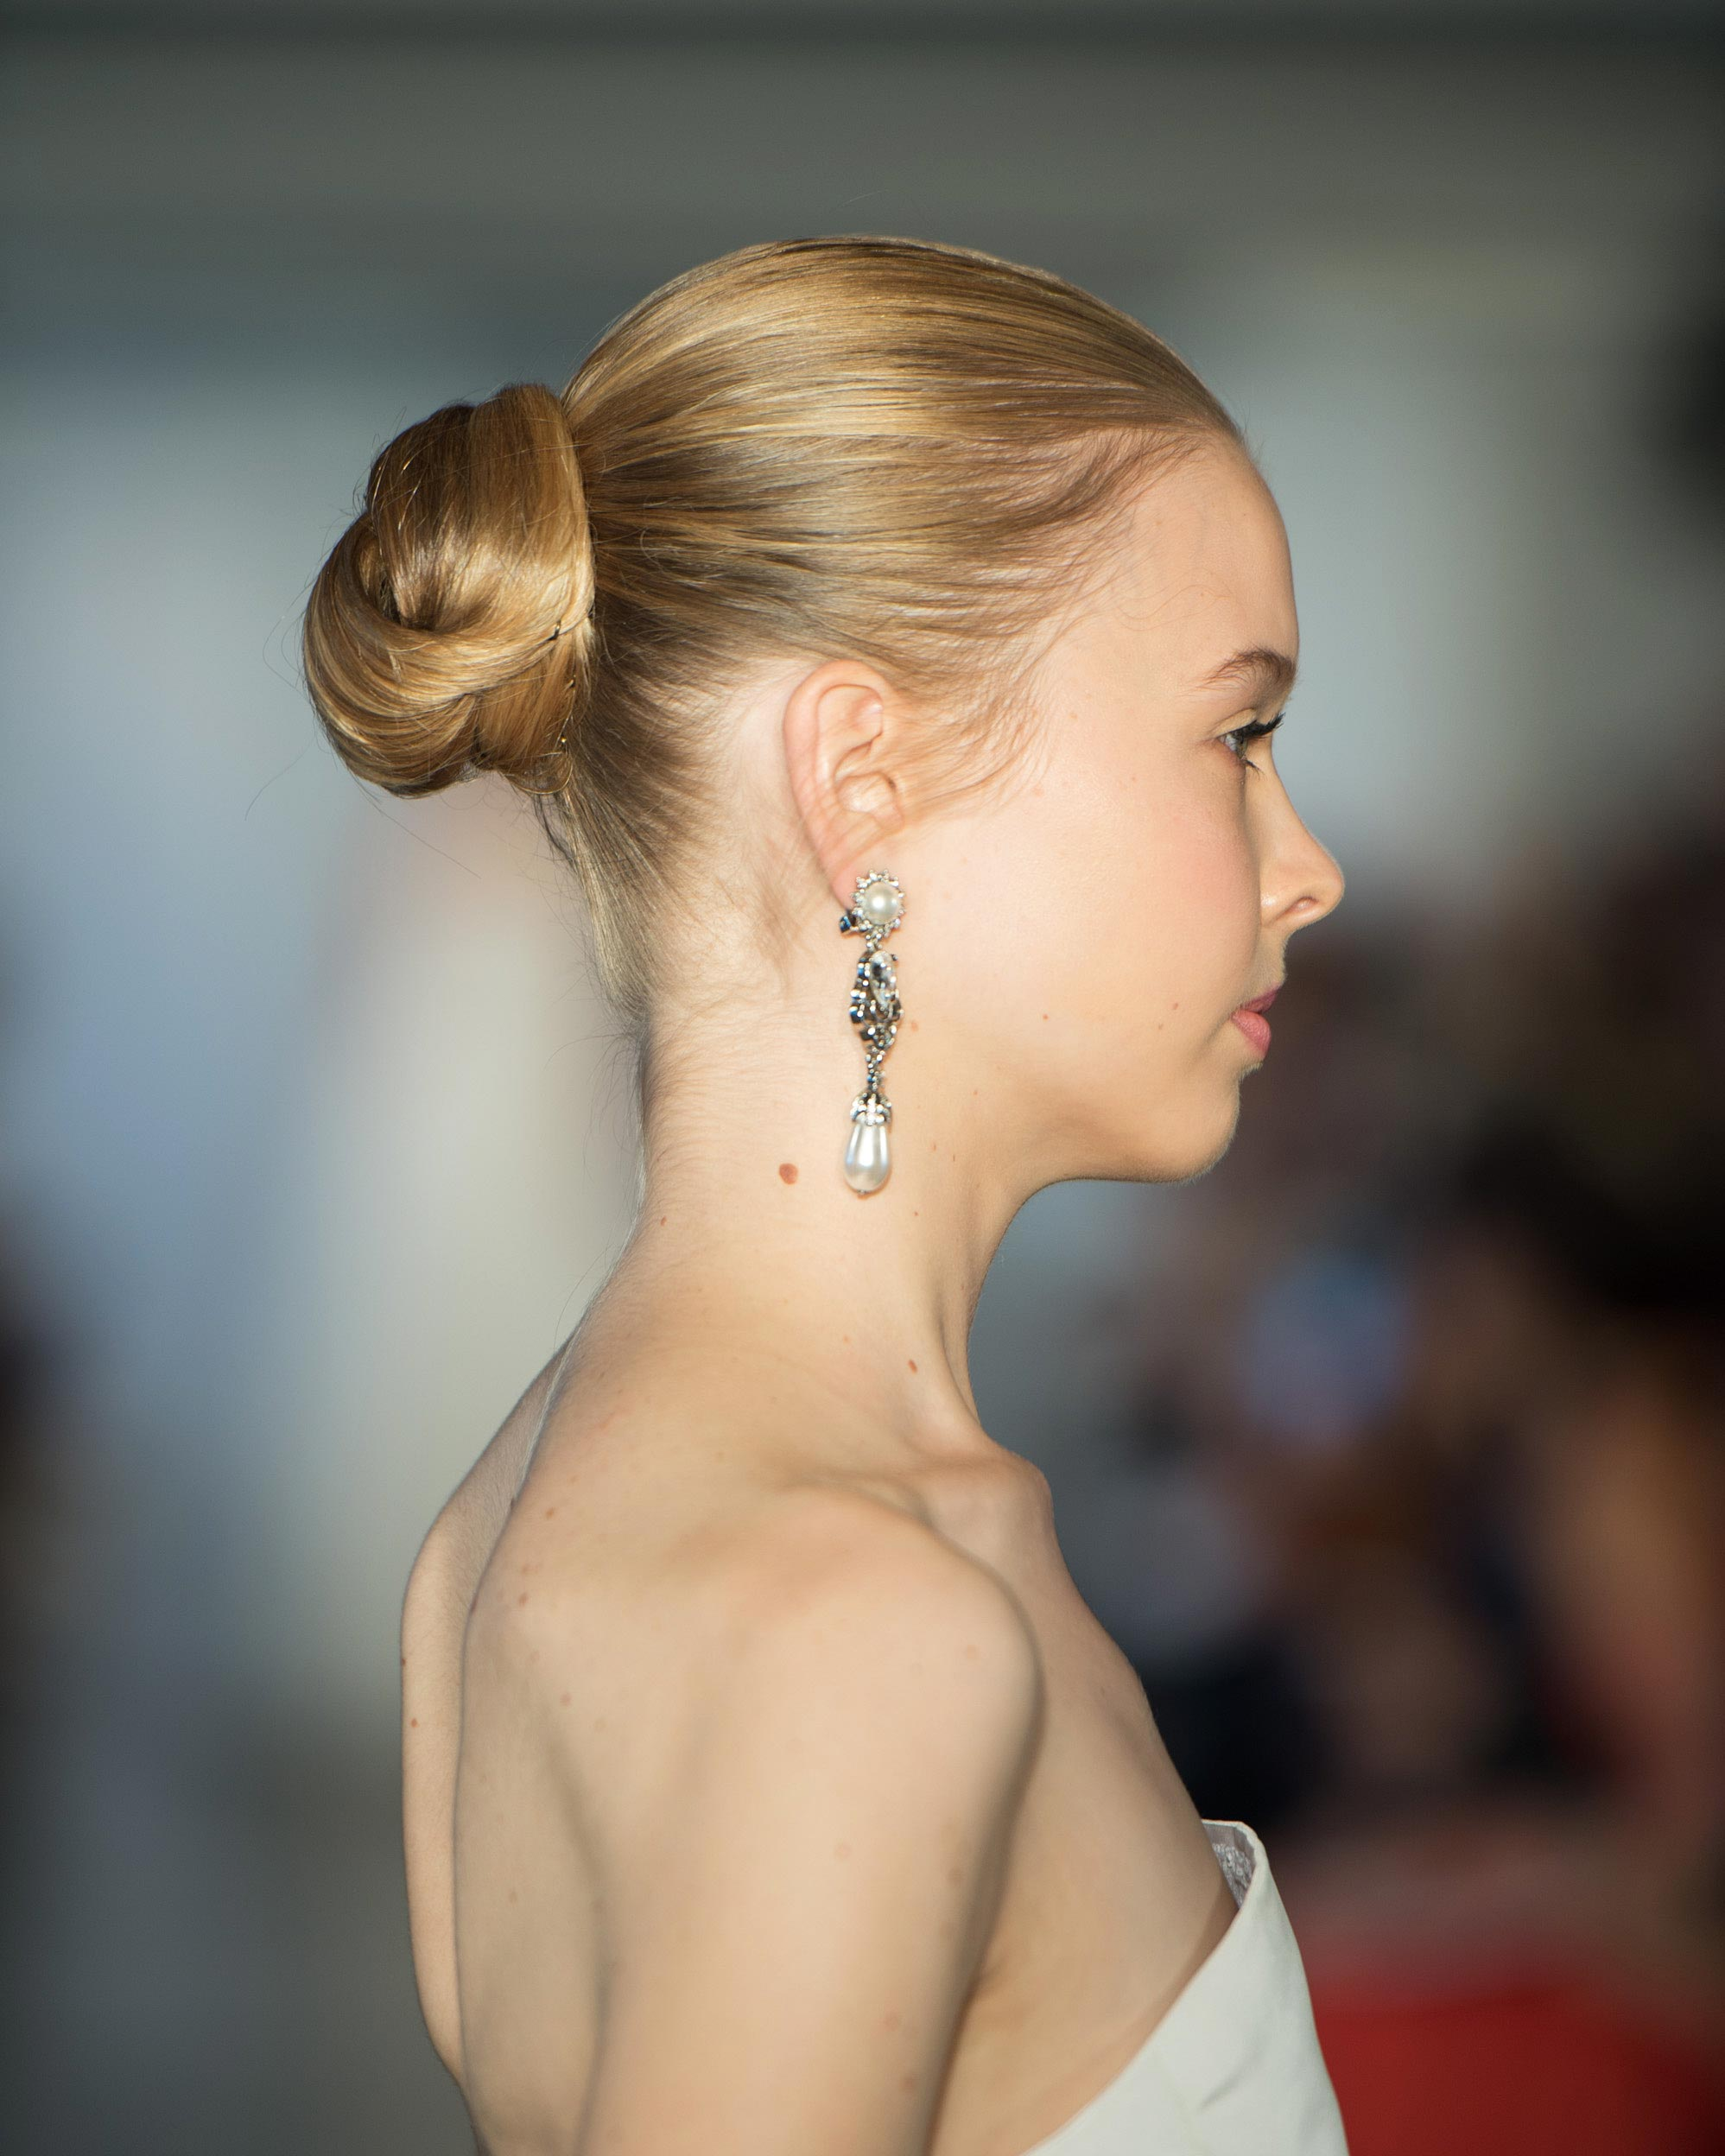 bridal-fashion-hairstyles-oscar-de-la-renta-spring-2017-back-0416.jpg